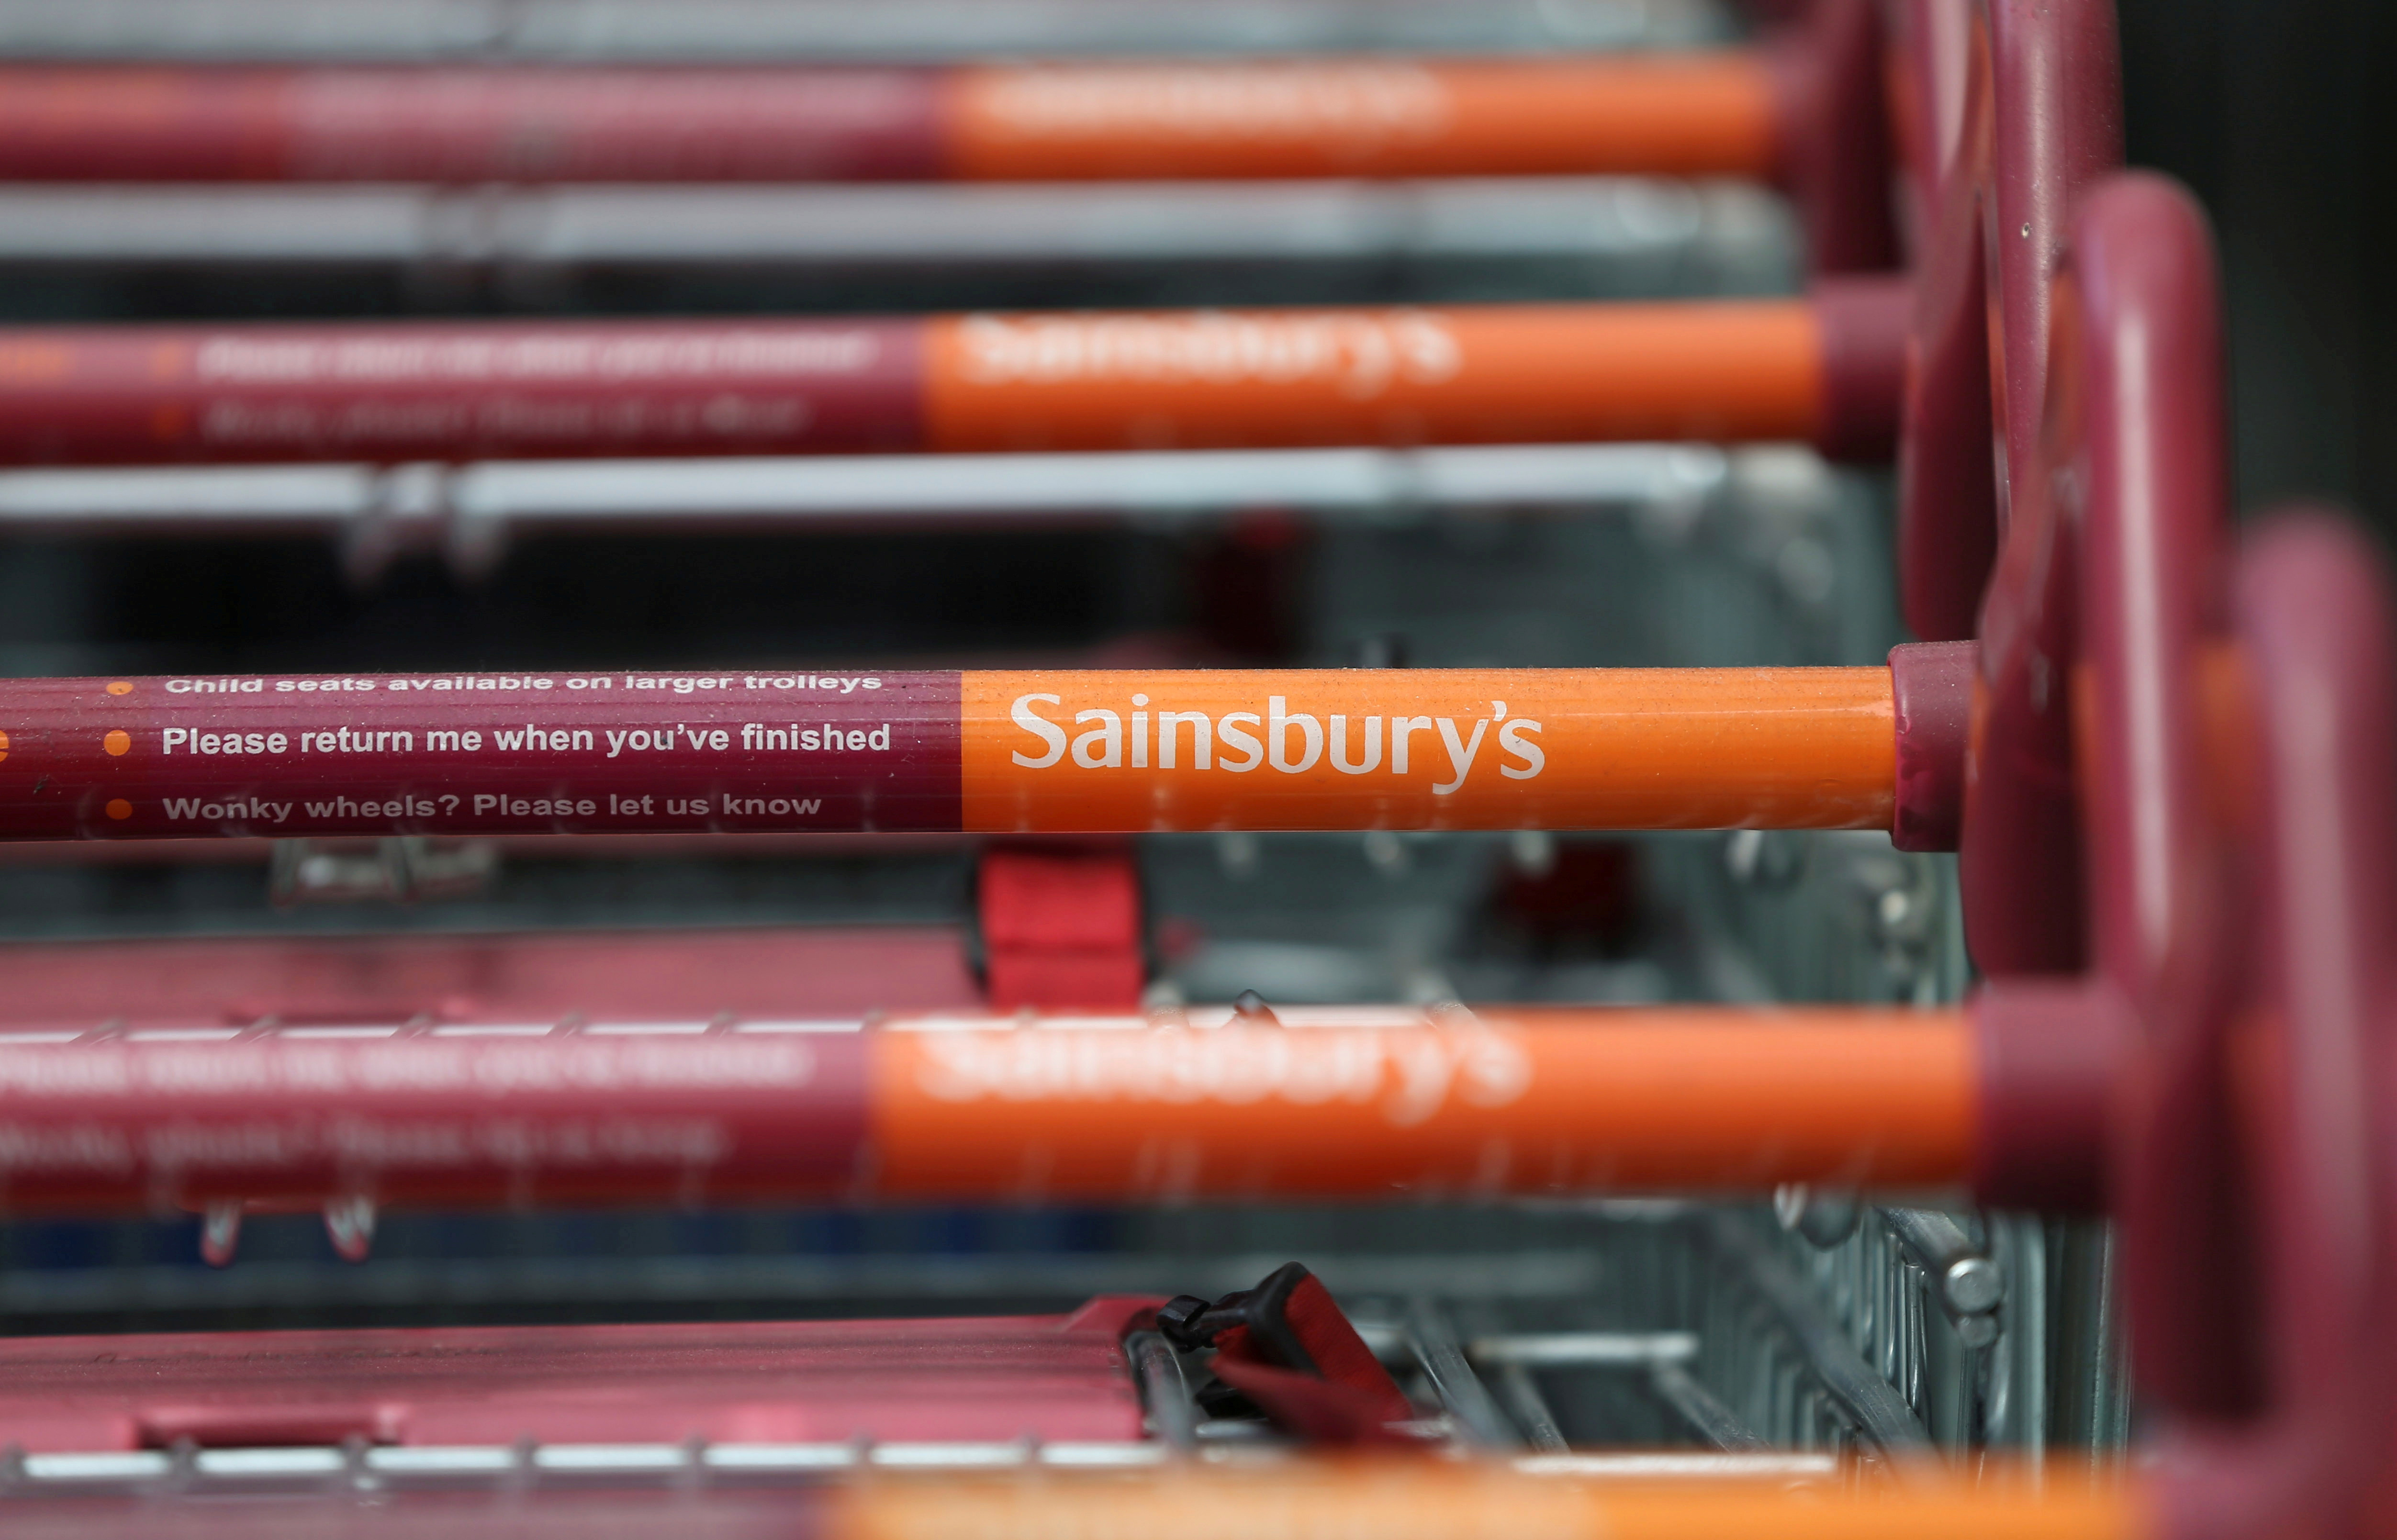 Shopping trolleys are seen at a Sainsbury's store in London, Britain,  April 30, 2016. REUTERS/Neil Hall/File Photo